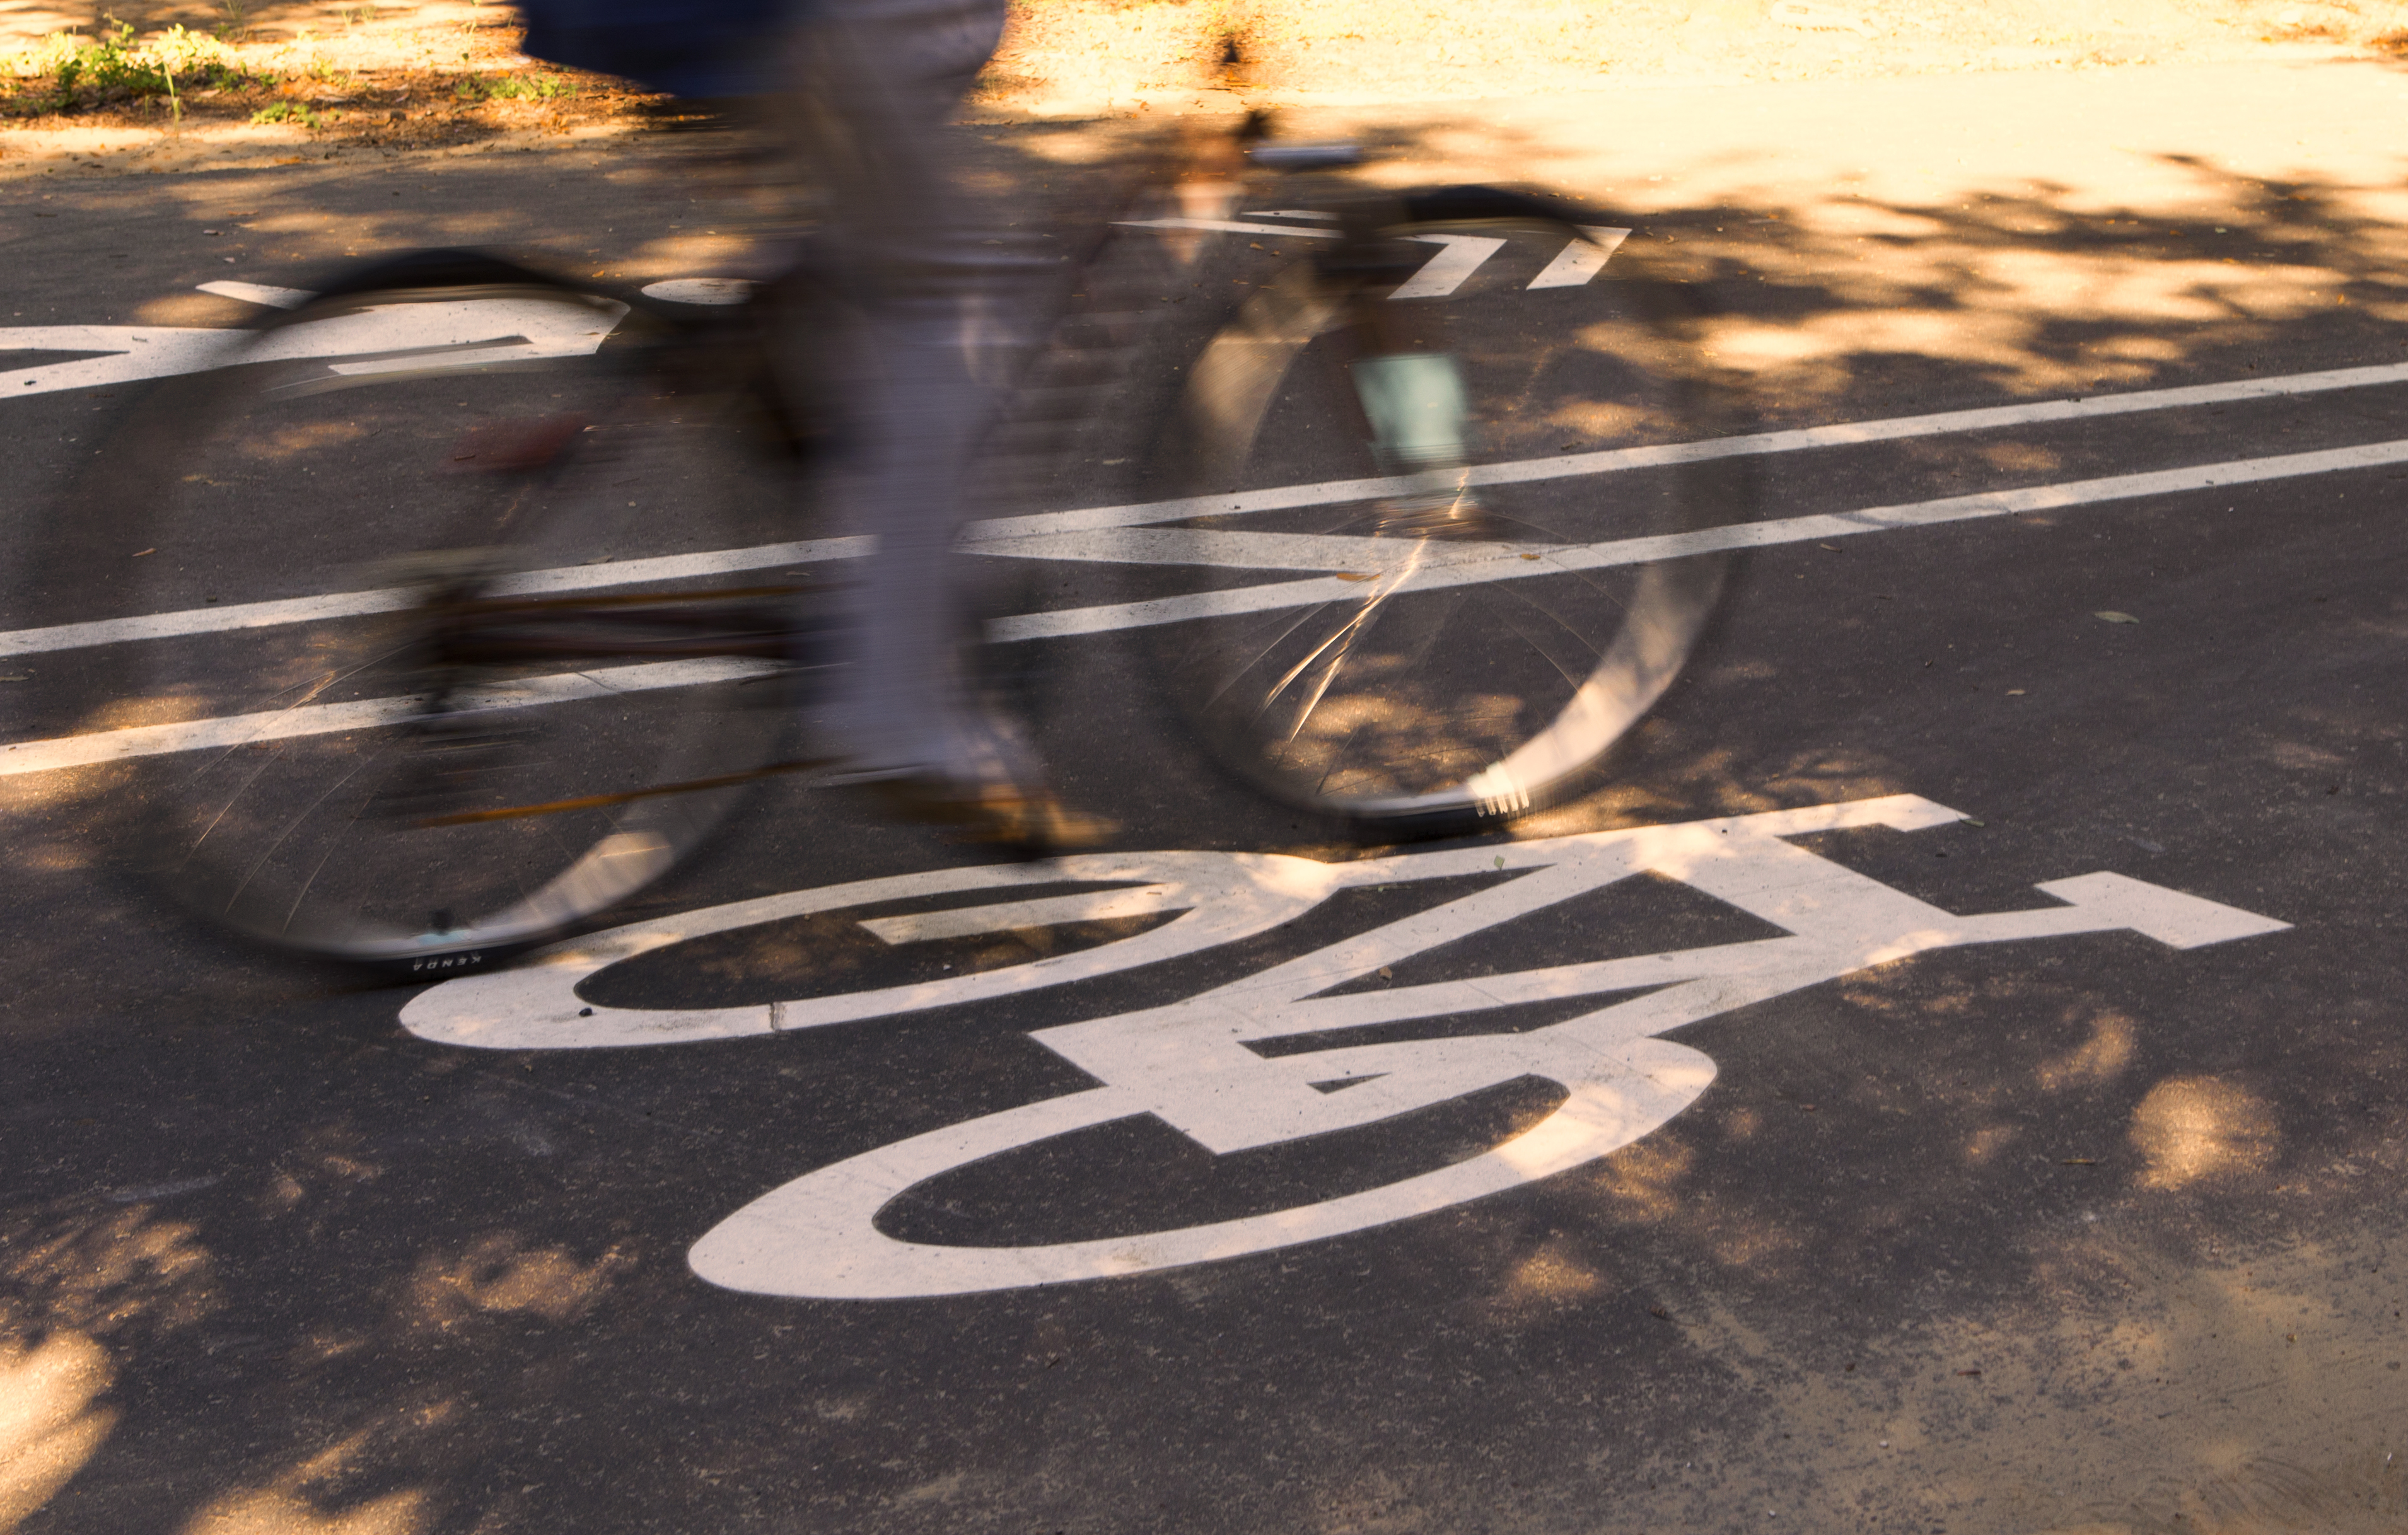 A bicycle is captured in a blur as it speeds over a white bike lane sign on a concrete road.